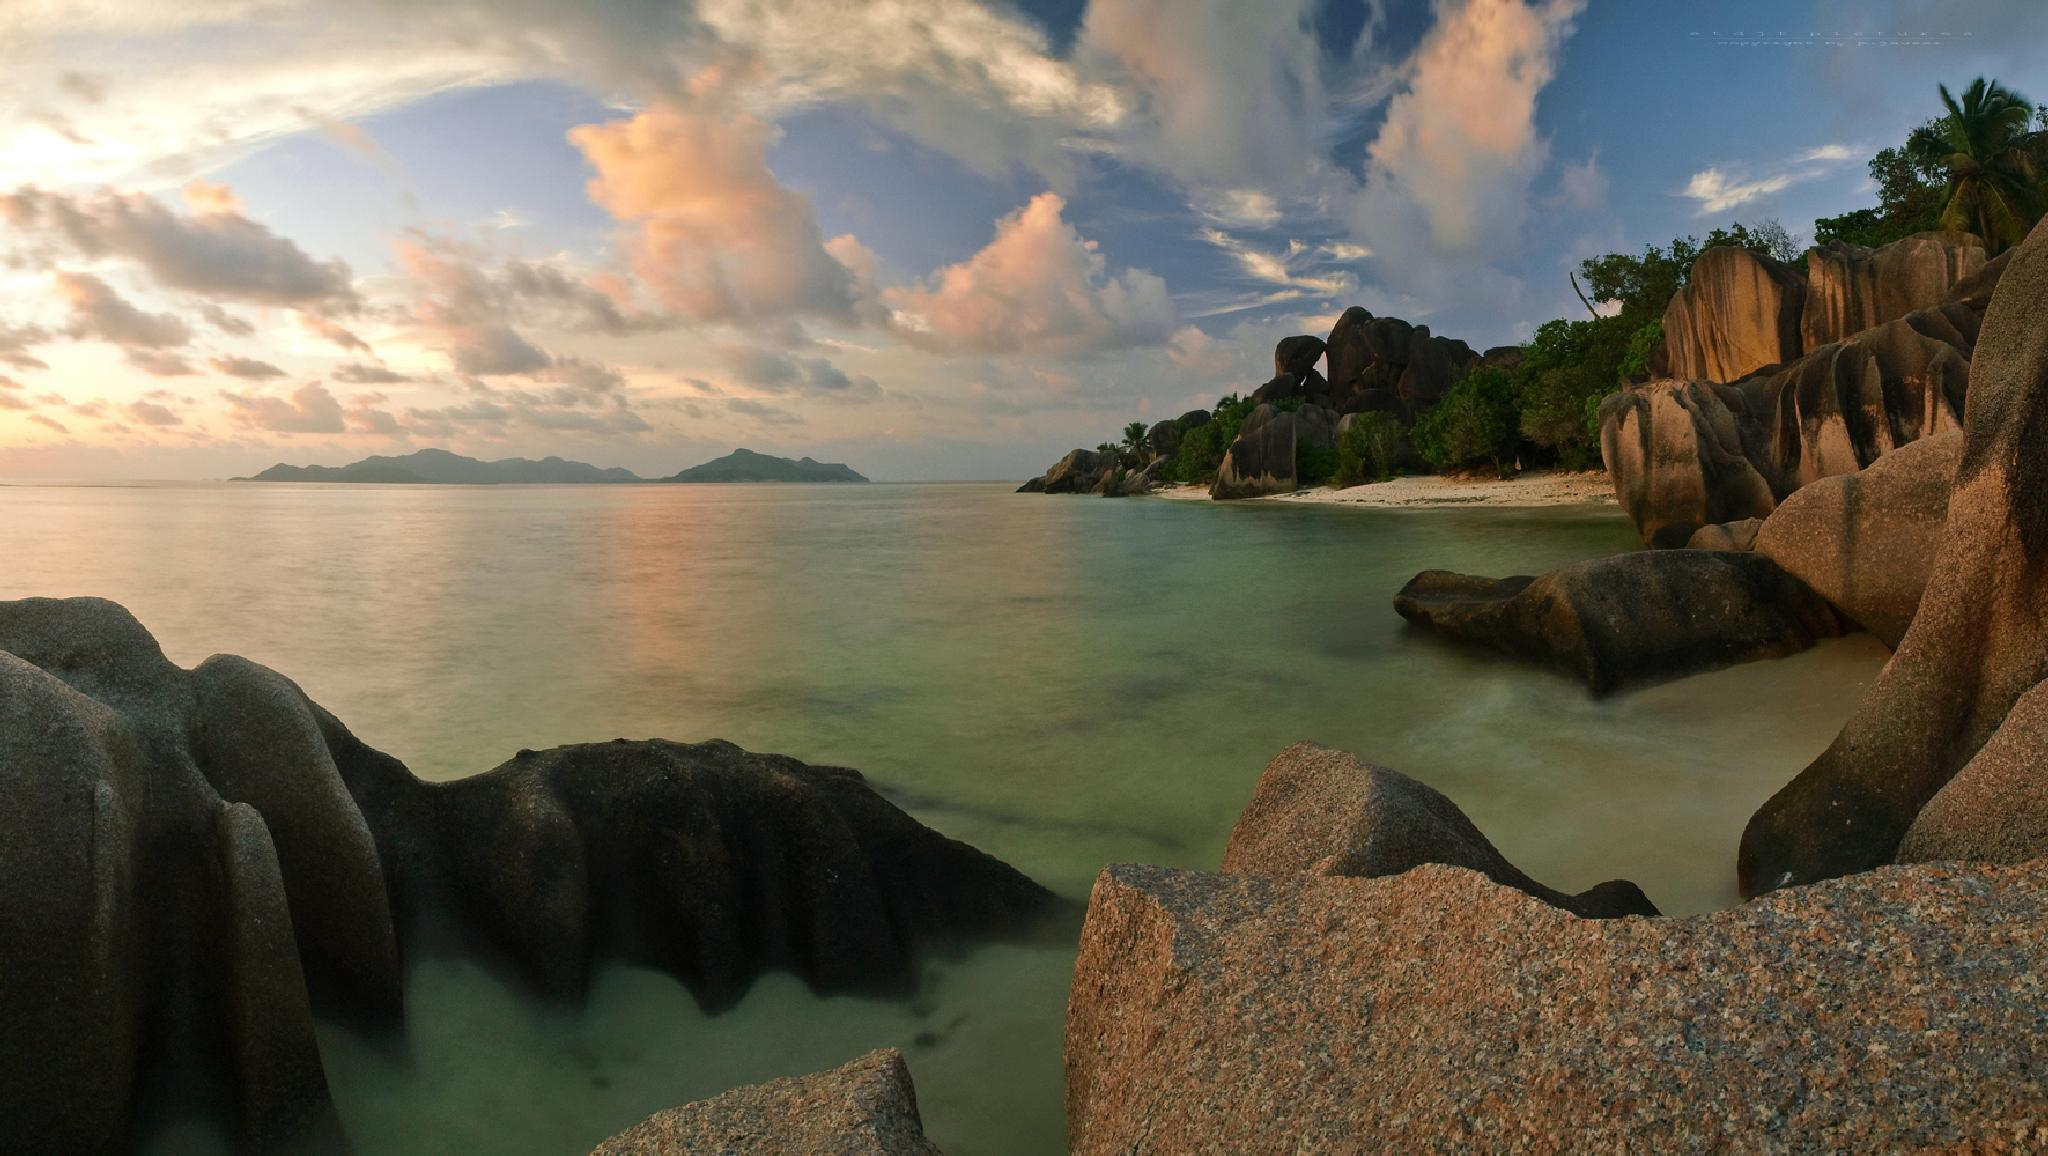 Anse Source d`Argent - La Digue Island - Seychelles 2014 by etdjtpictures